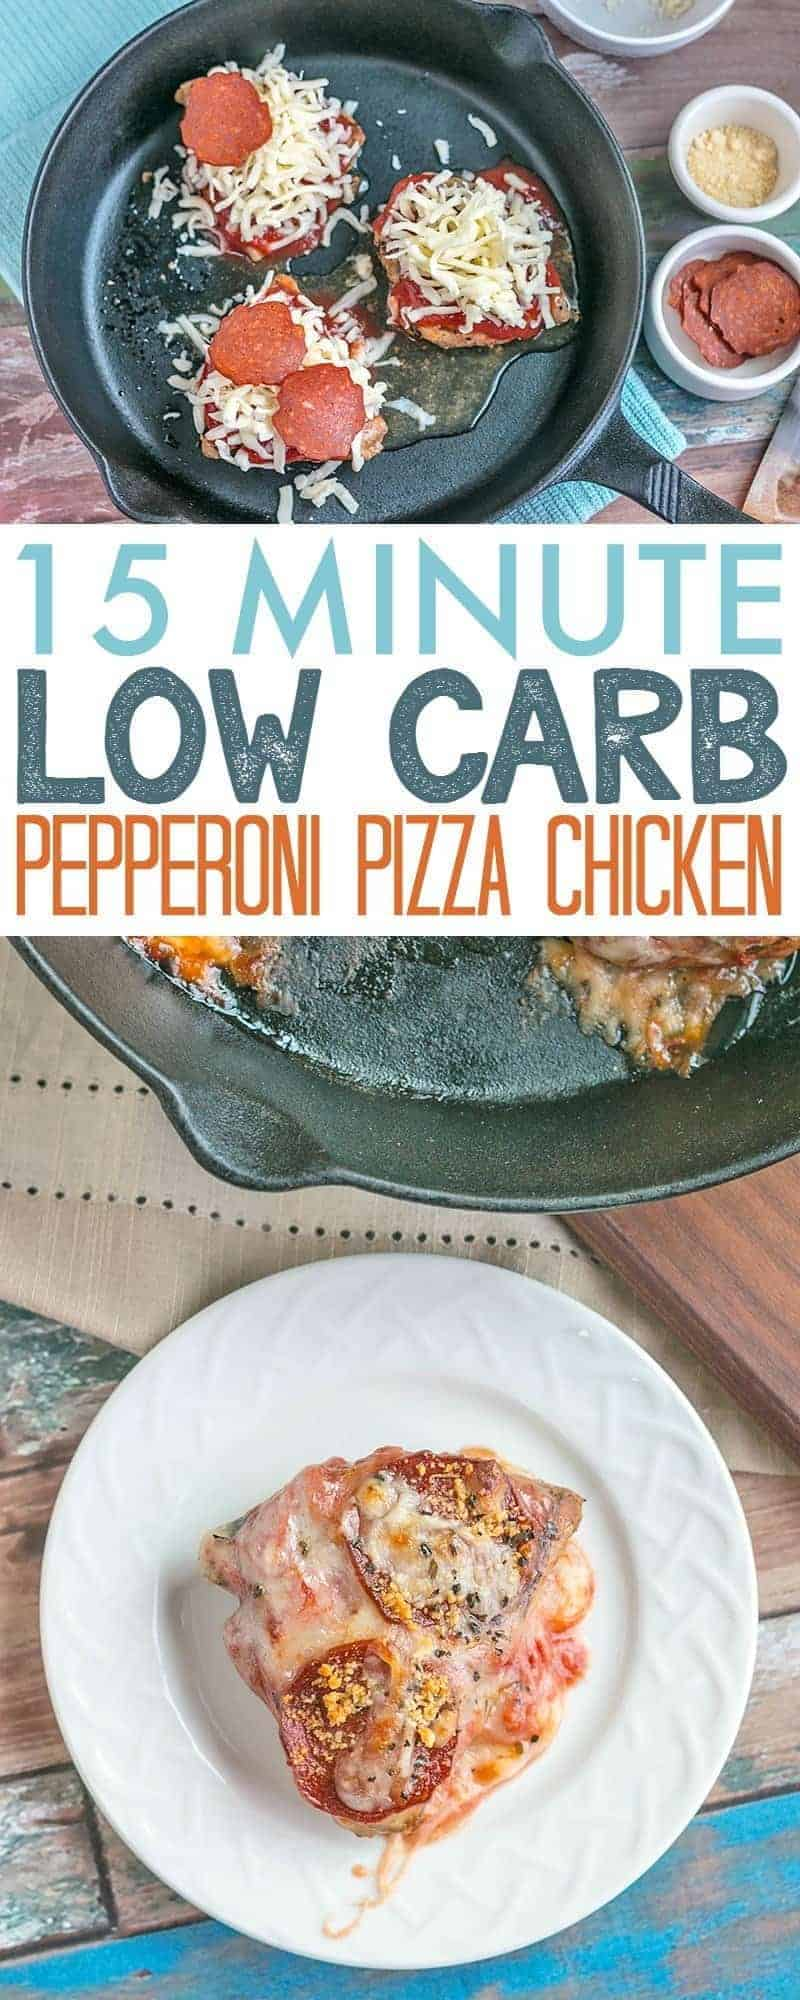 15 Minute Low Carb Pepperoni Pizza Chicken - super easy and delicious low carb / keto recipe ready in just 15 minutes.